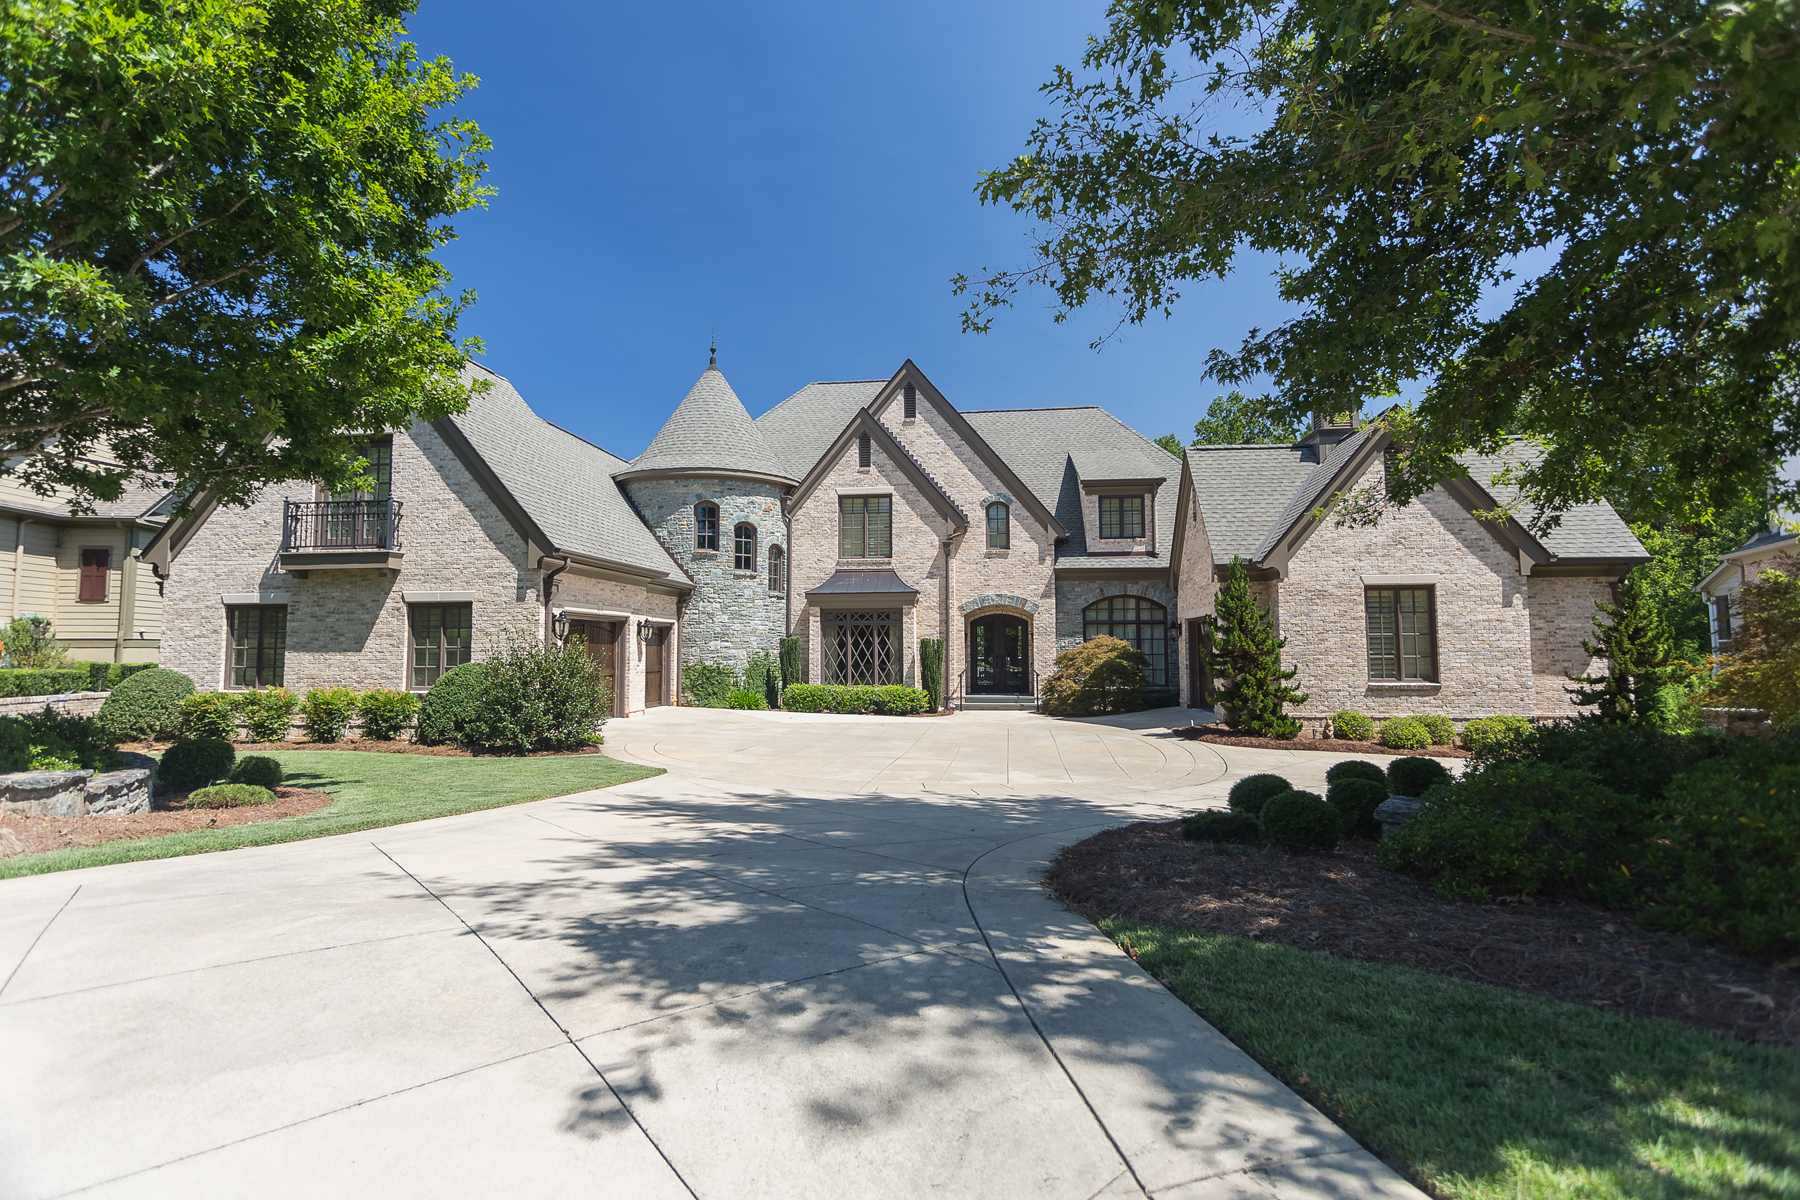 Single Family Homes for Sale at French Normandy Masterpiece In Peachtree City 204 Brookings Lane Peachtree City, Georgia 30269 United States